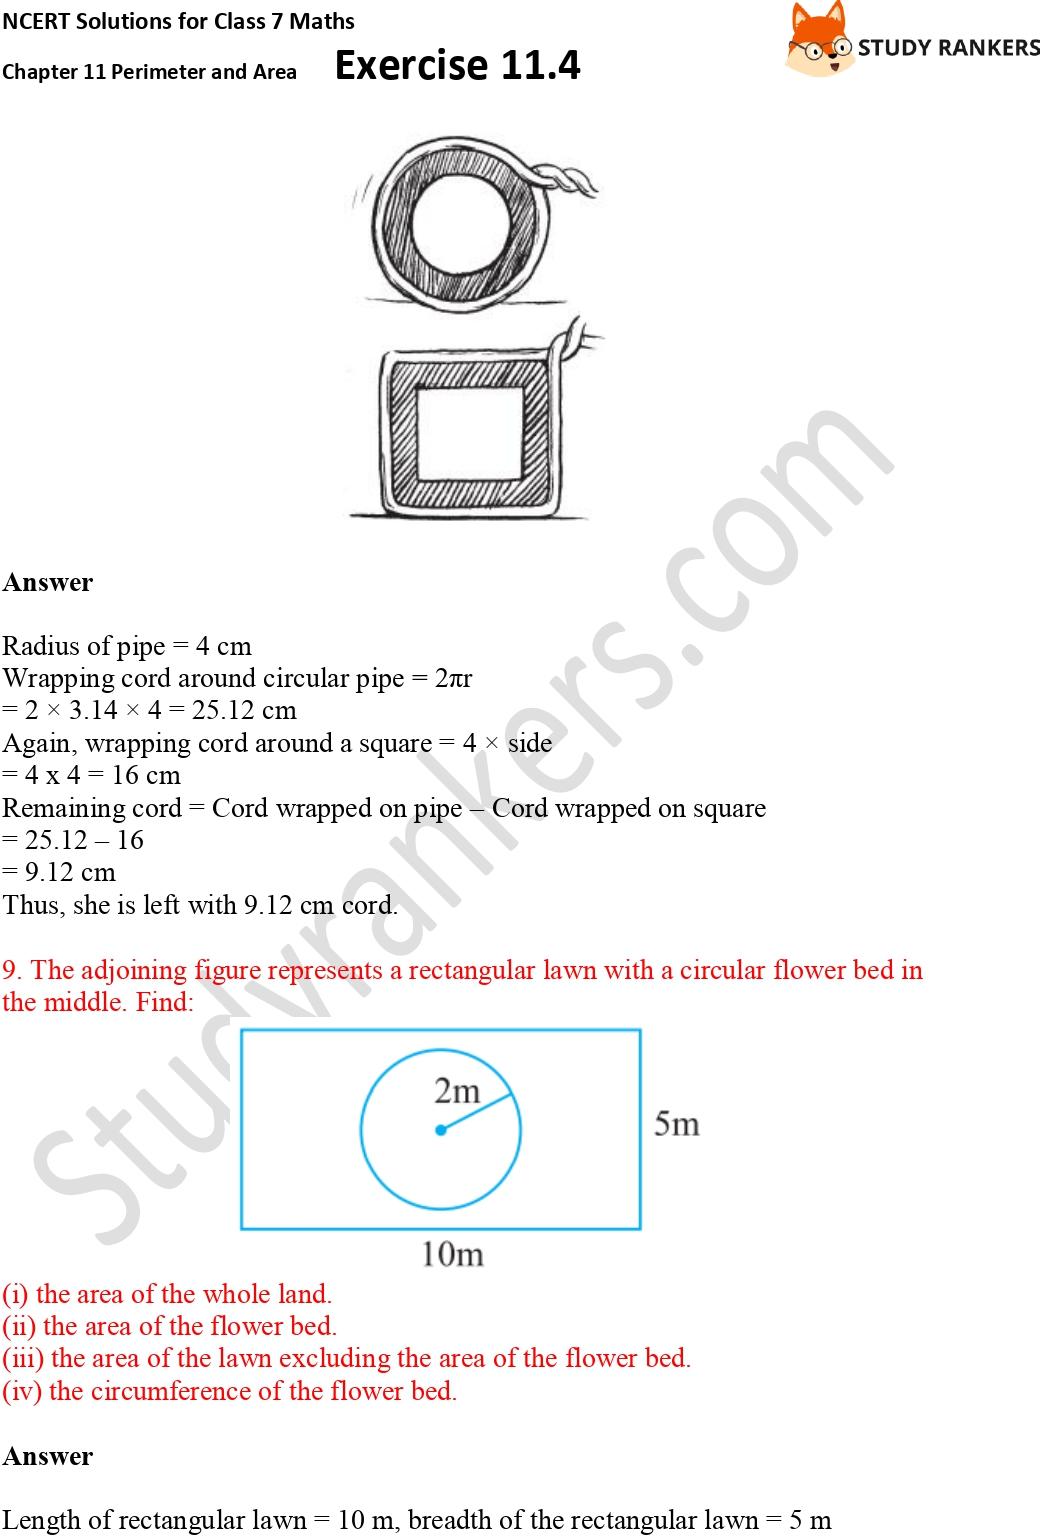 NCERT Solutions for Class 7 Maths Ch 11 Perimeter and Area Exercise 11.4 Part 6